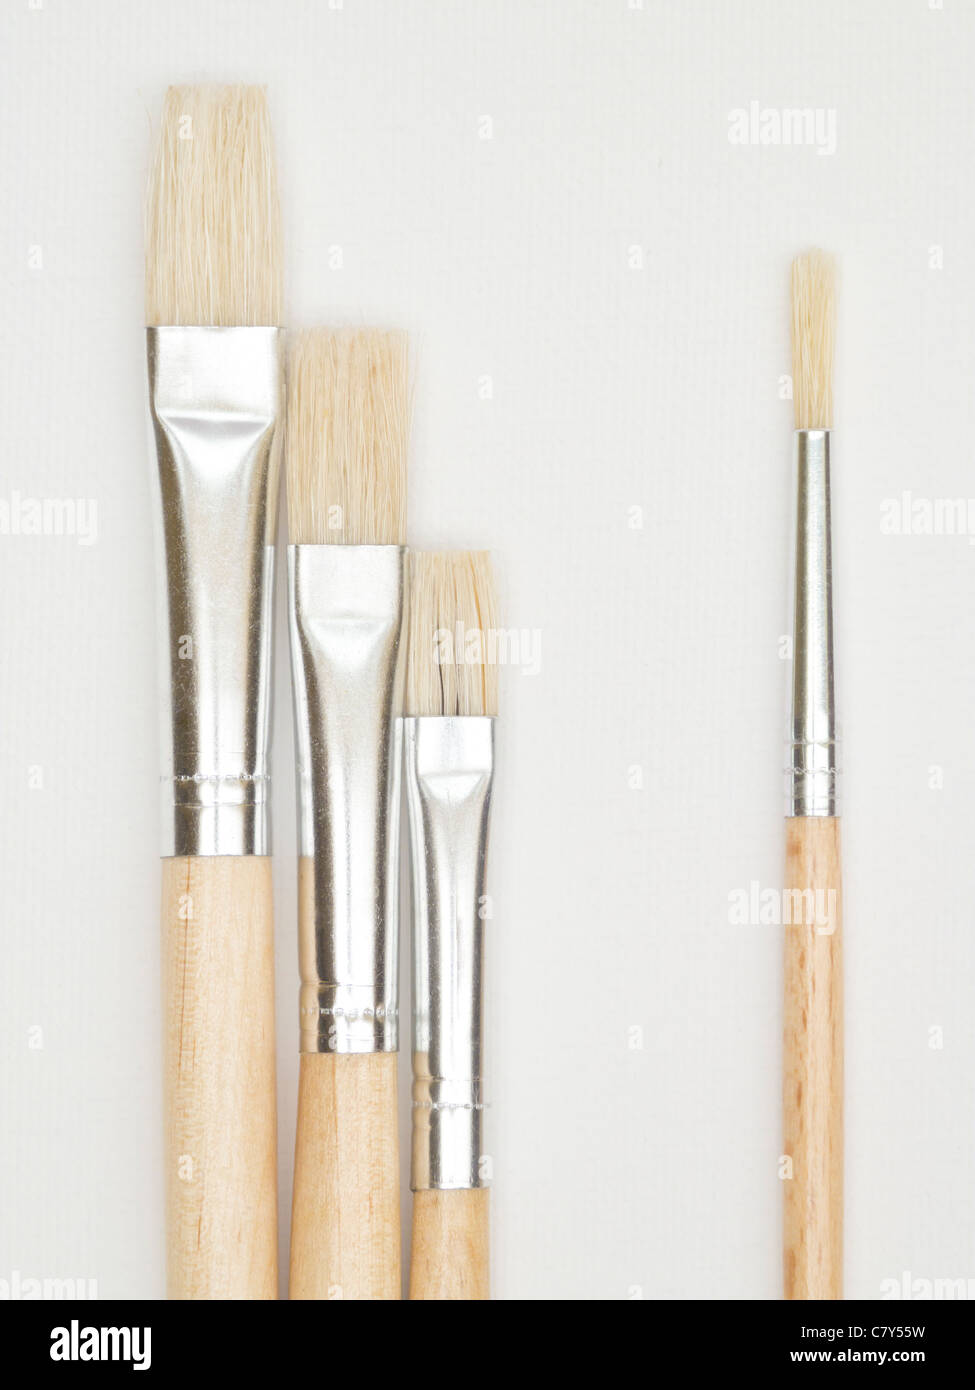 Paint Brushes on Canvas - Stock Image